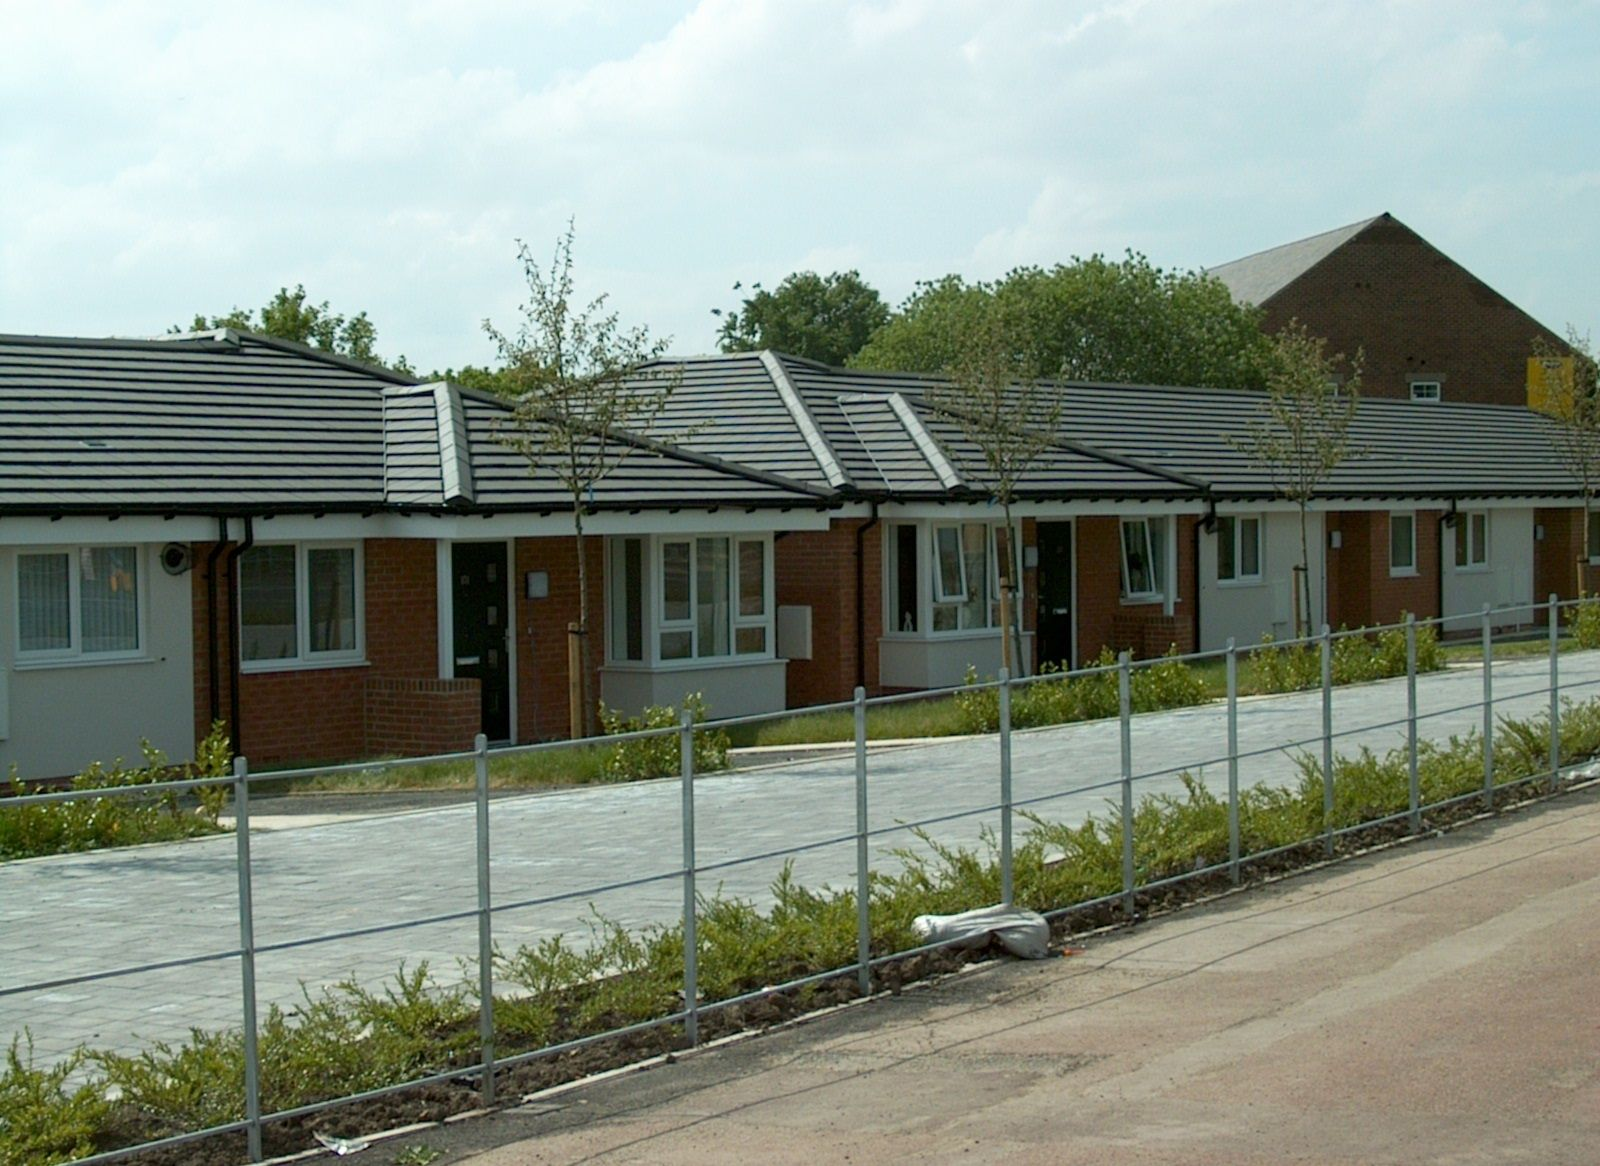 Whickham View Bungalows - 2